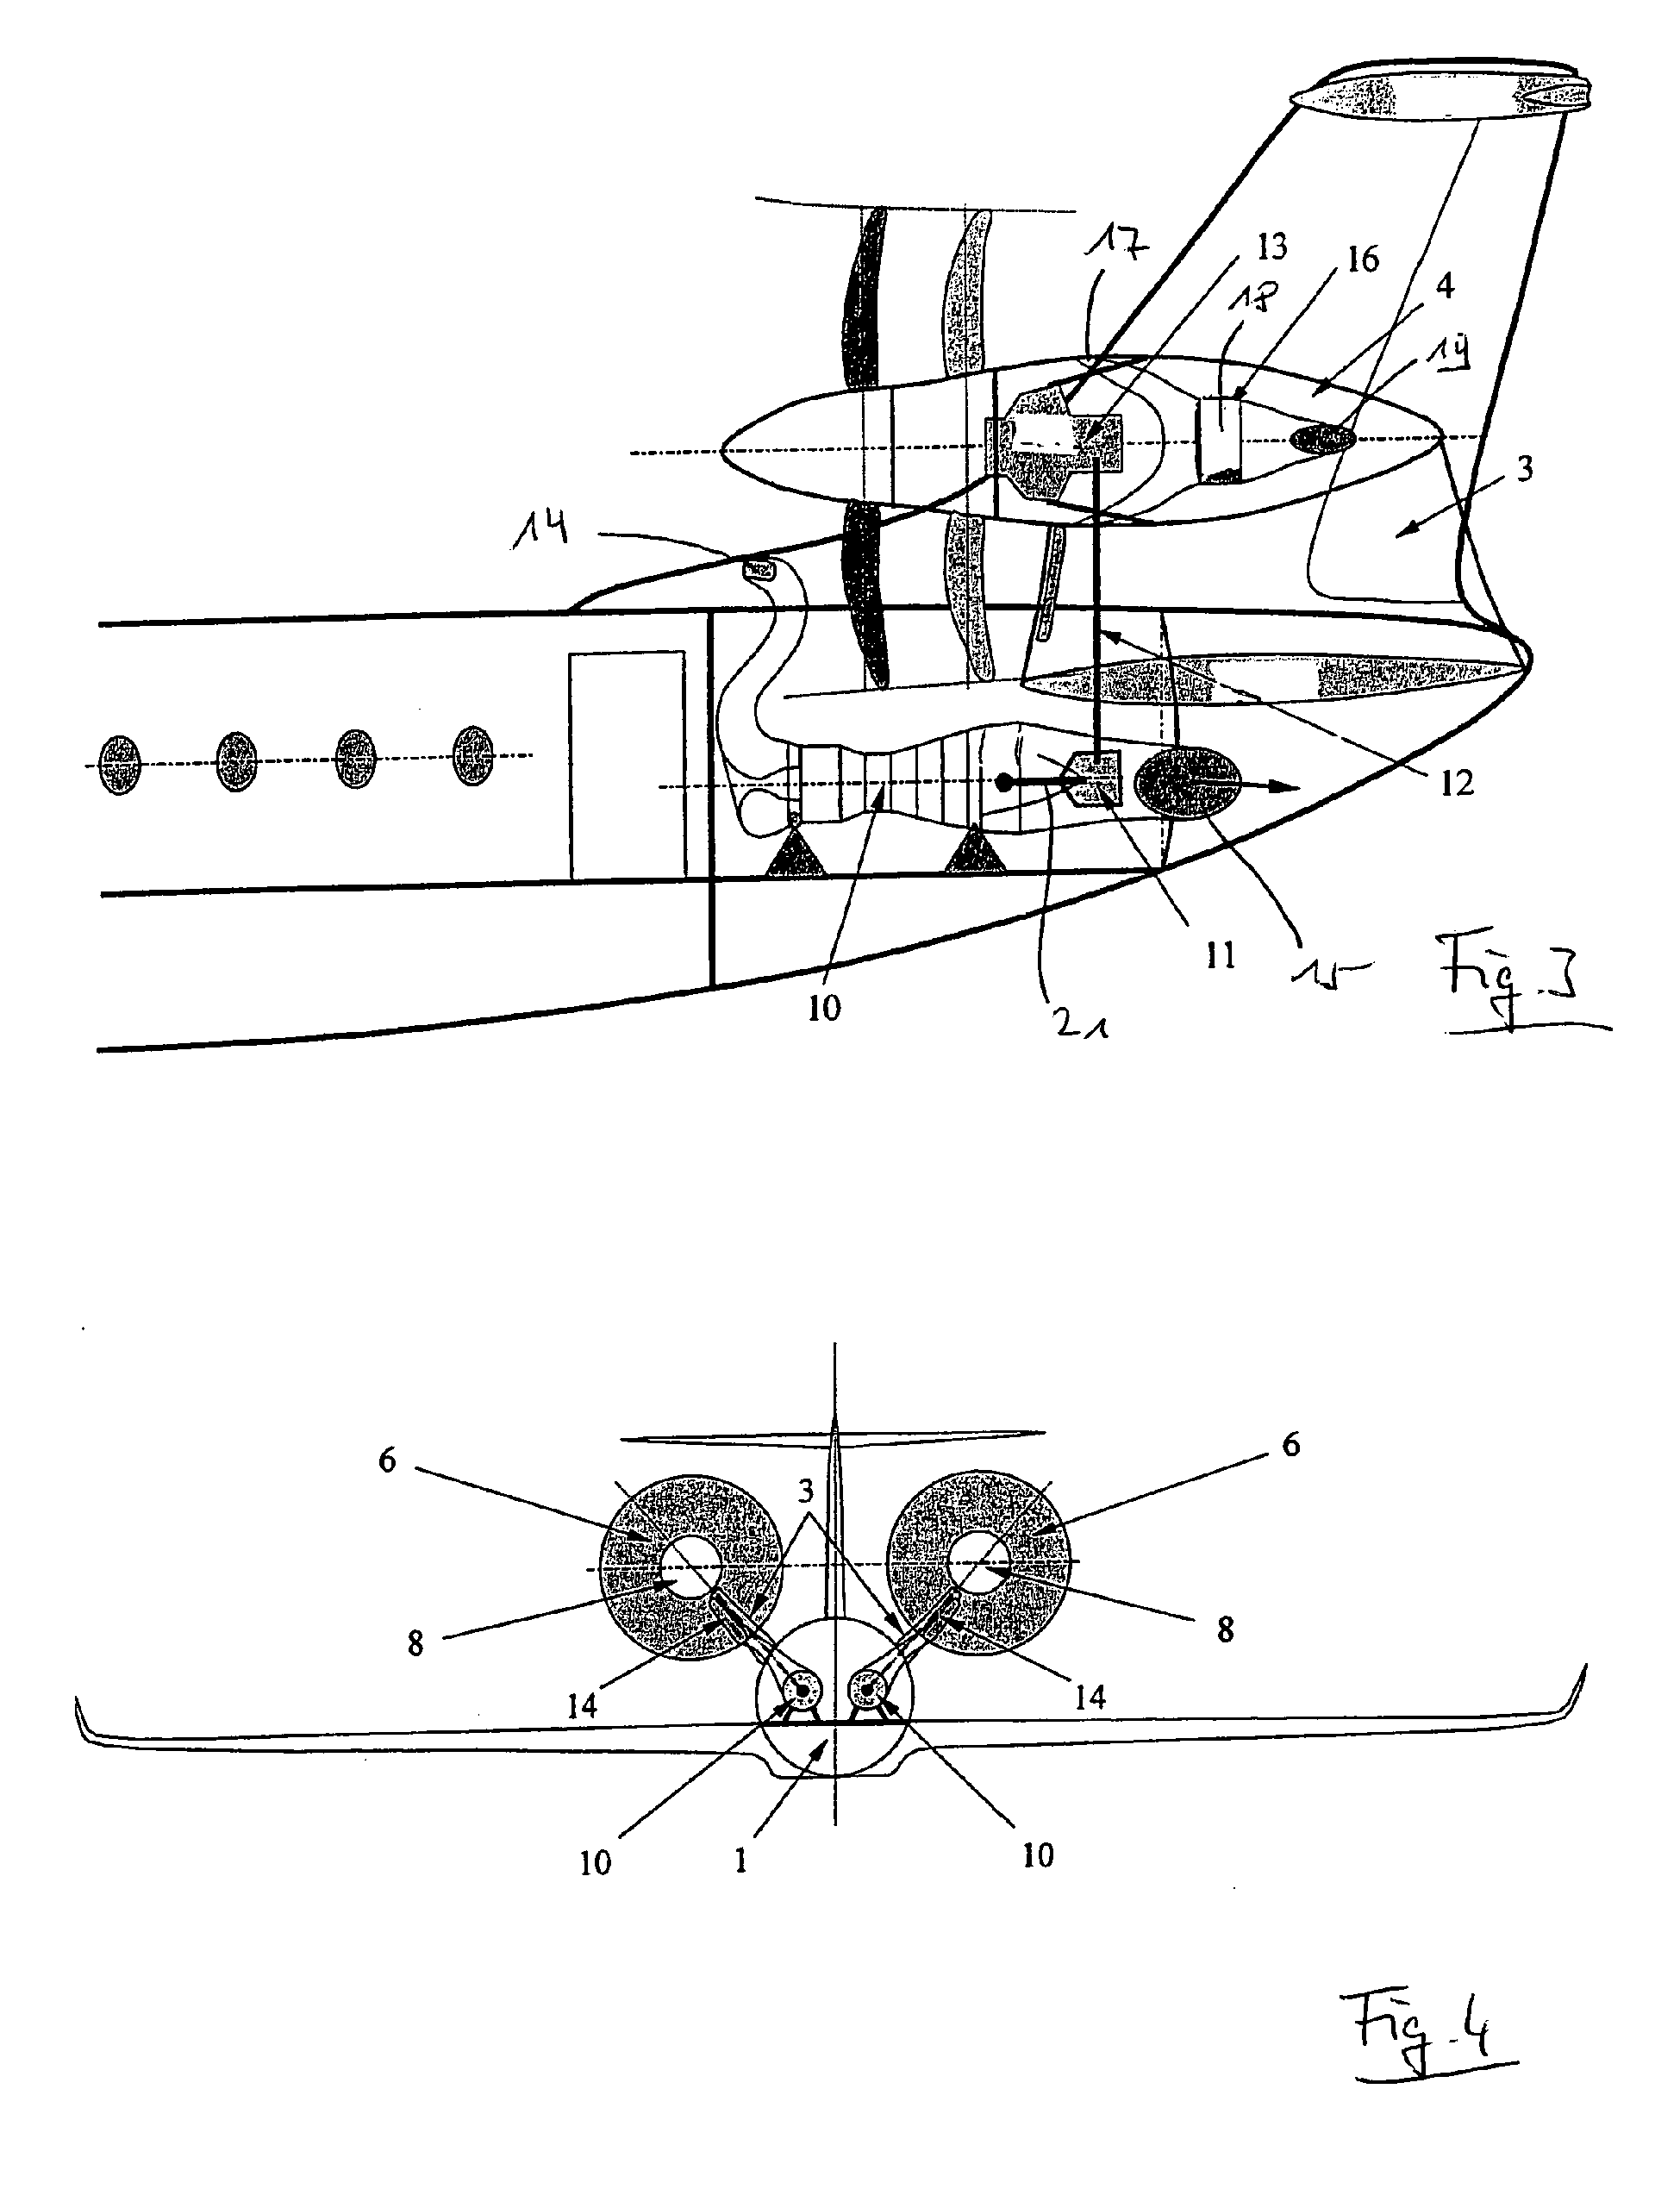 Patent Ep2202152a2 Airplane With A Rear Propeller Engine